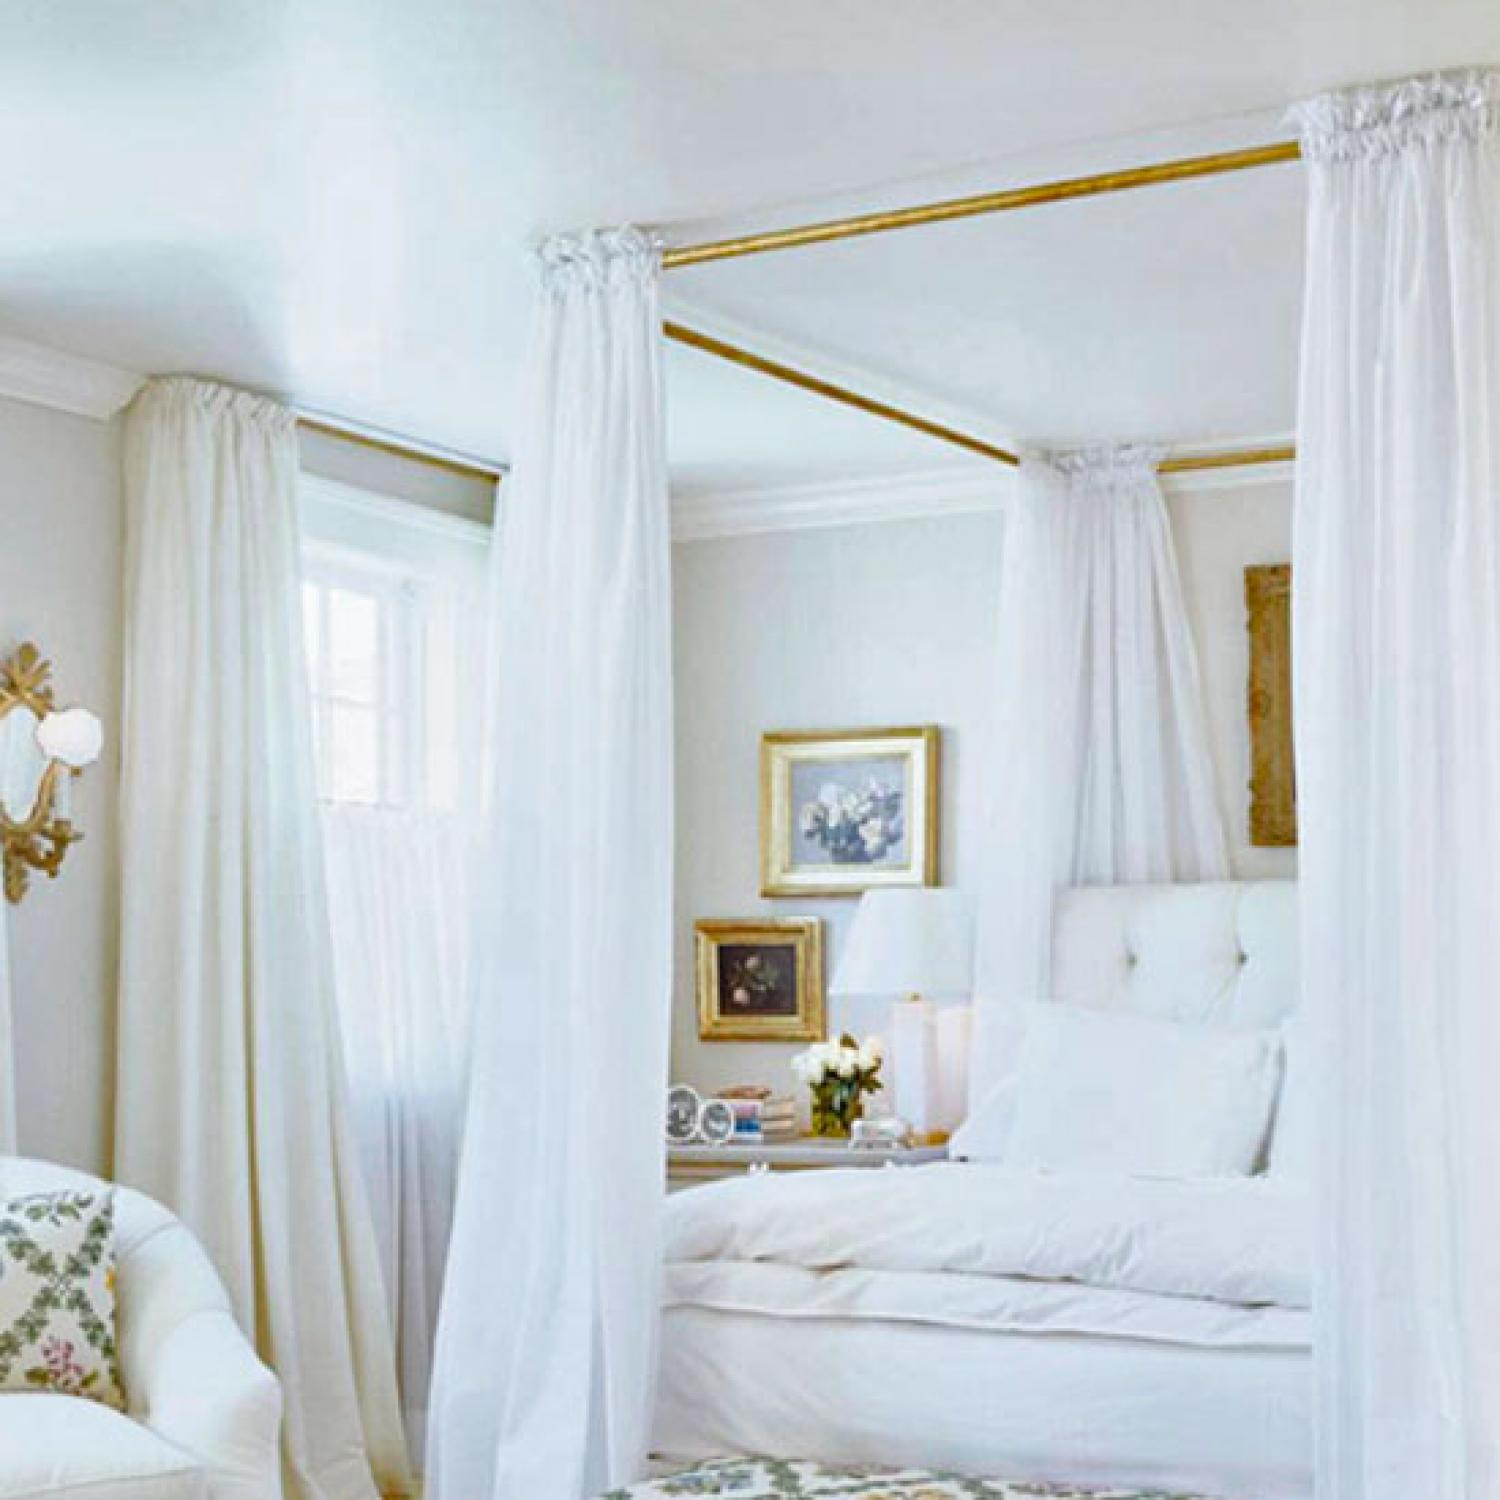 Bedroom Sets Living Spaces Bedroom Ceiling Colours Bedroom Cabinet Design Ideas Bedroom Bureau Decorating: Beauty In The Bedroom